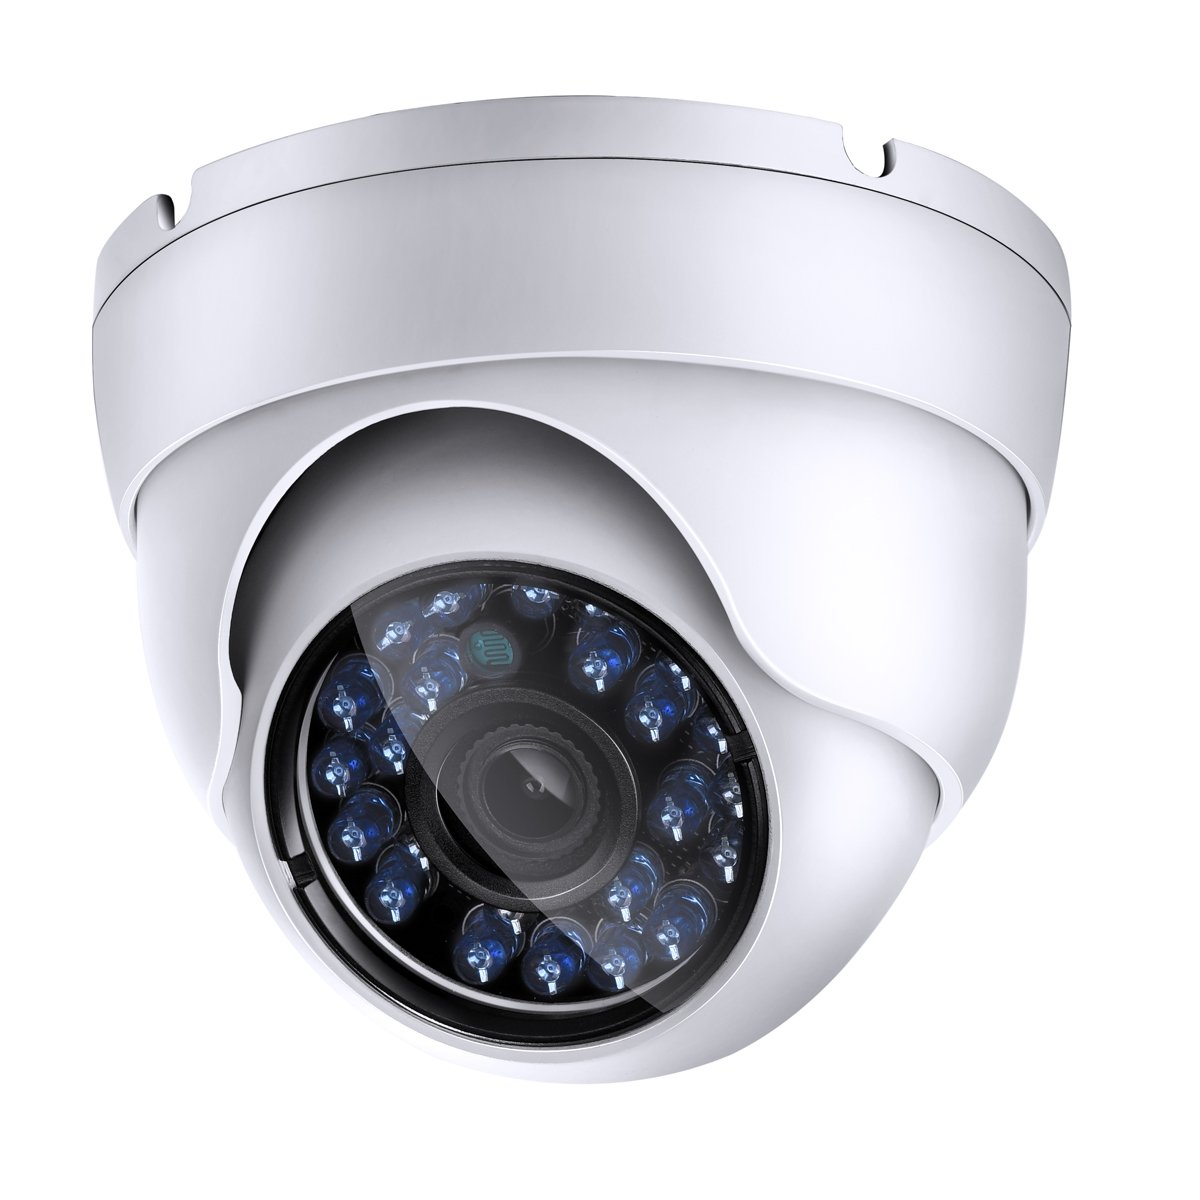 1200tvl CCTV Dome Security Camera, Day Night Vision 24 Ir LEDs Outdoor Indoor Weatherproof Wide Angle 3.6mm Lens for Analog Video Surveillance Cameras System